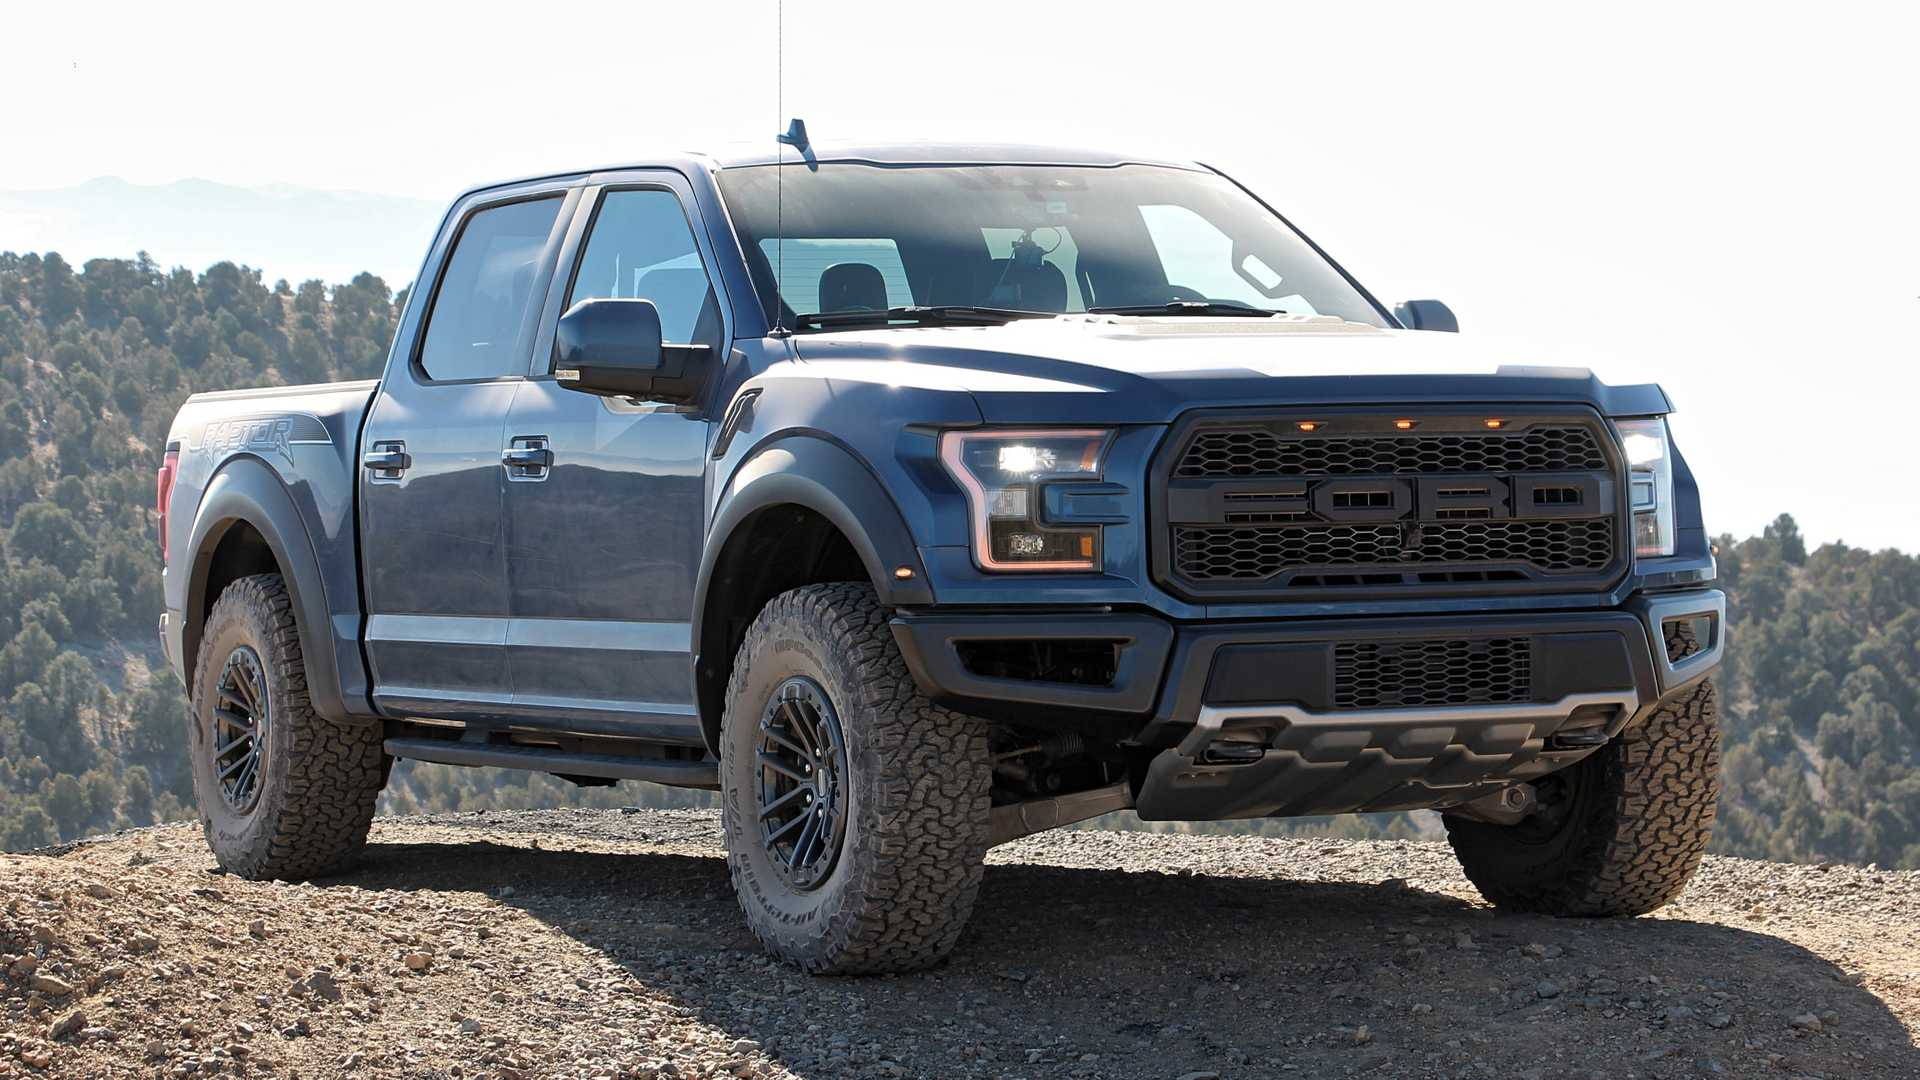 73 New 2019 All Ford F150 Raptor Price